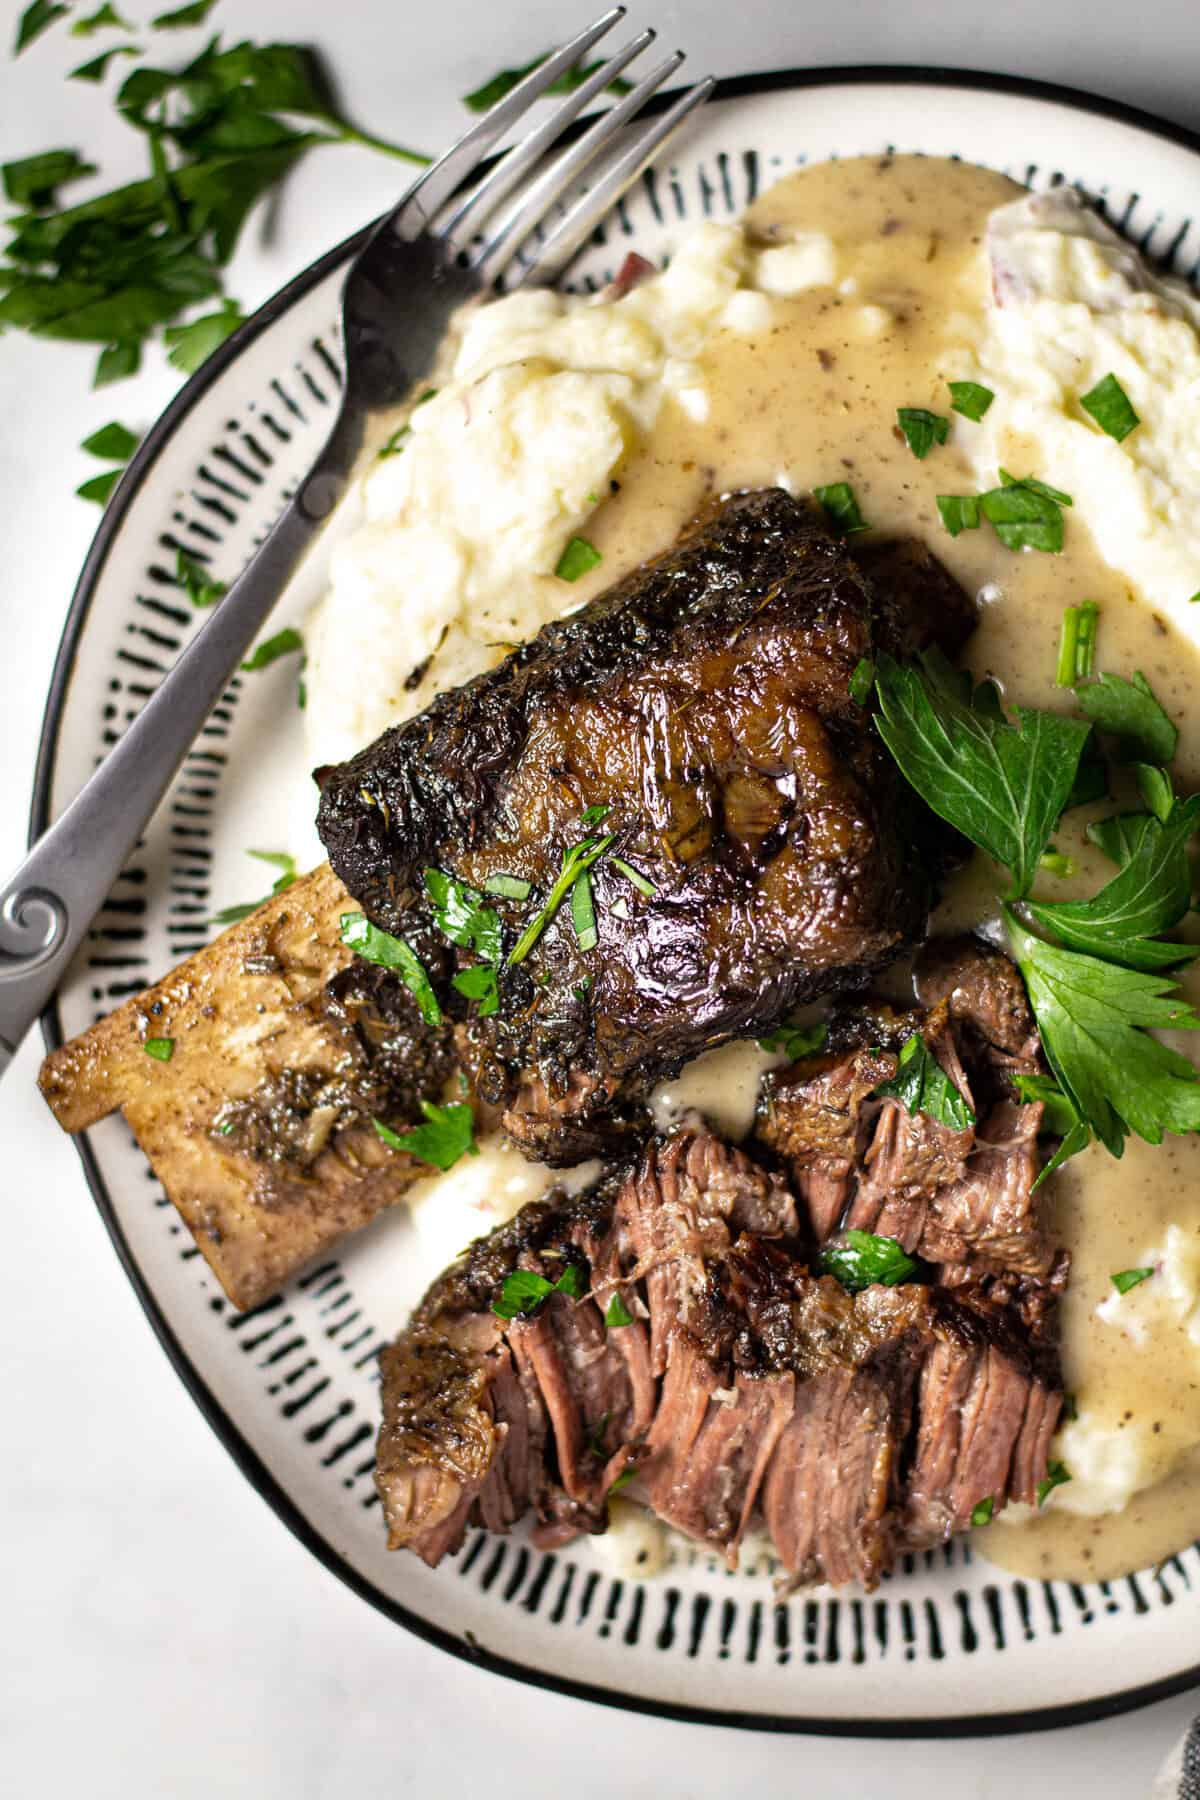 Overhead shot of a plate filled with short ribs and homemade mashed potatoes garnished with parsley